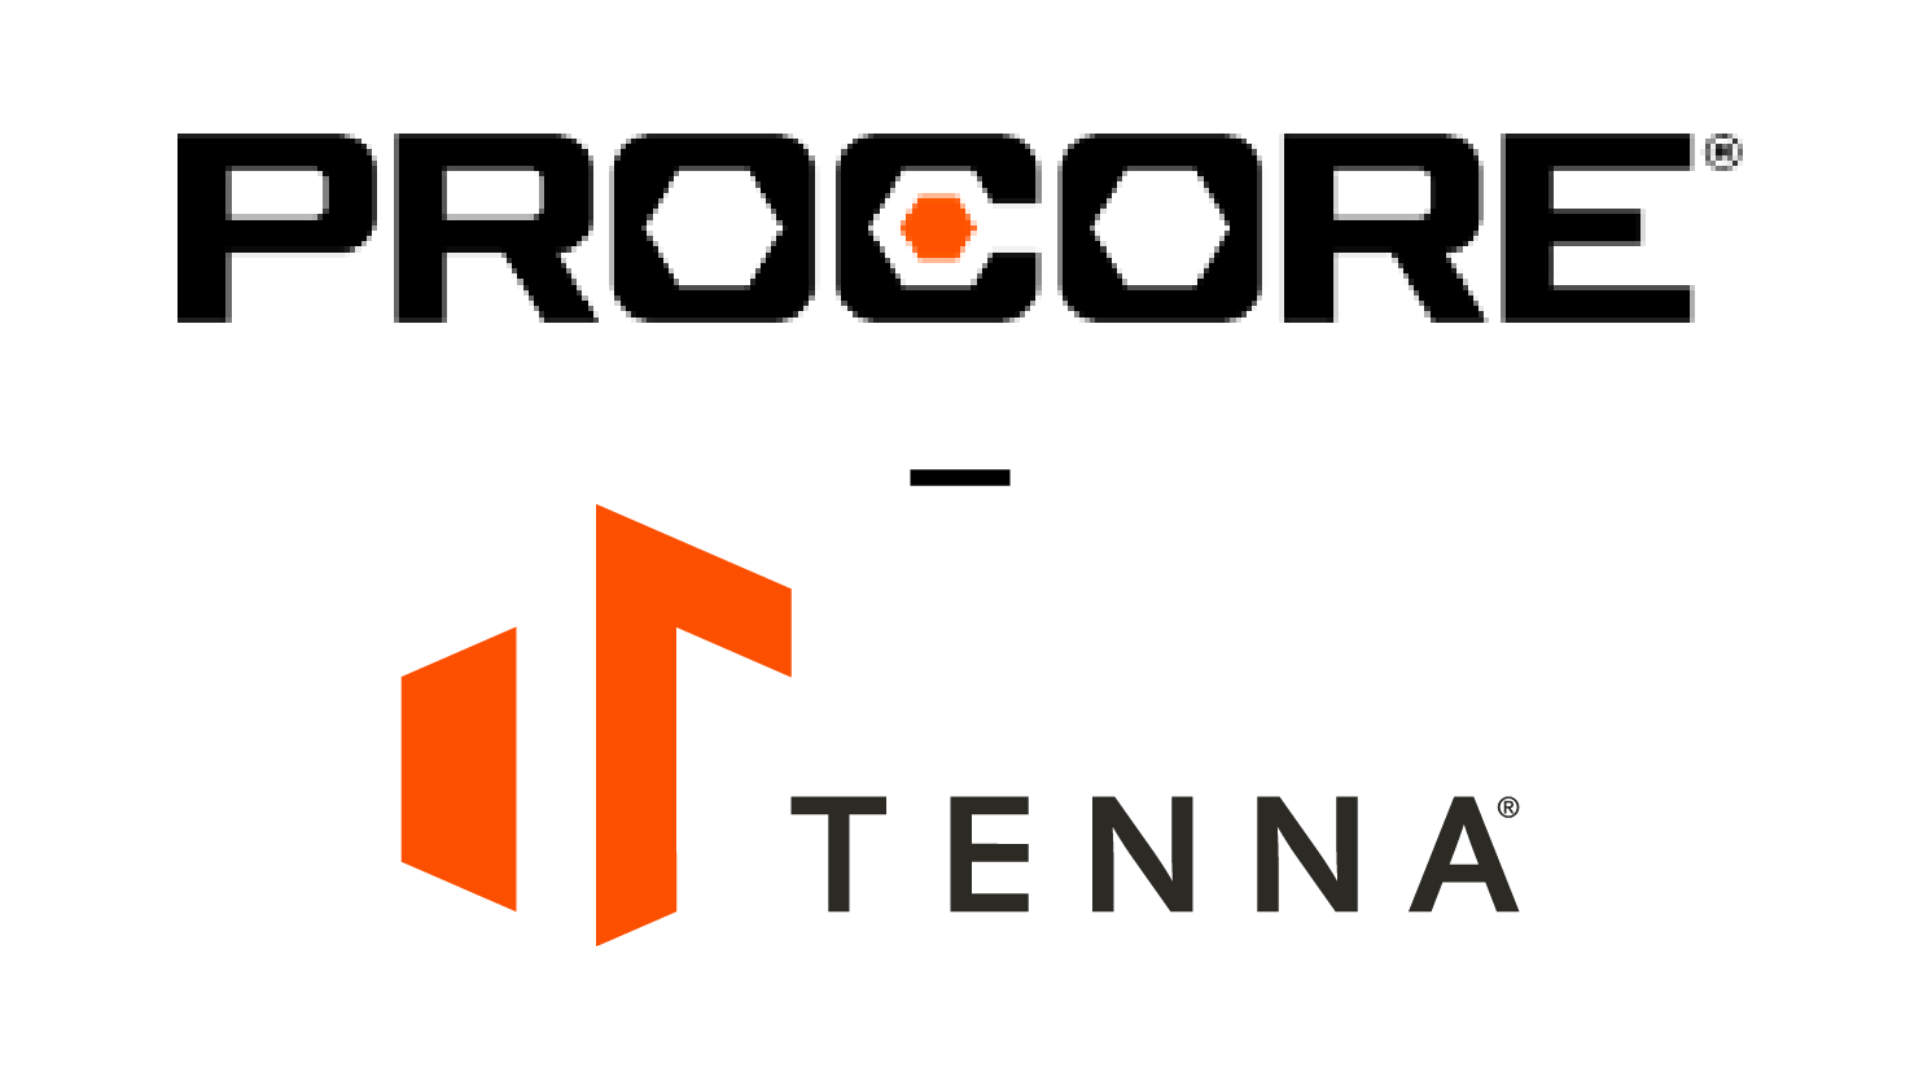 Tenna Integrates with Procore to allow Contractors to Optimize and Share Equipment Data